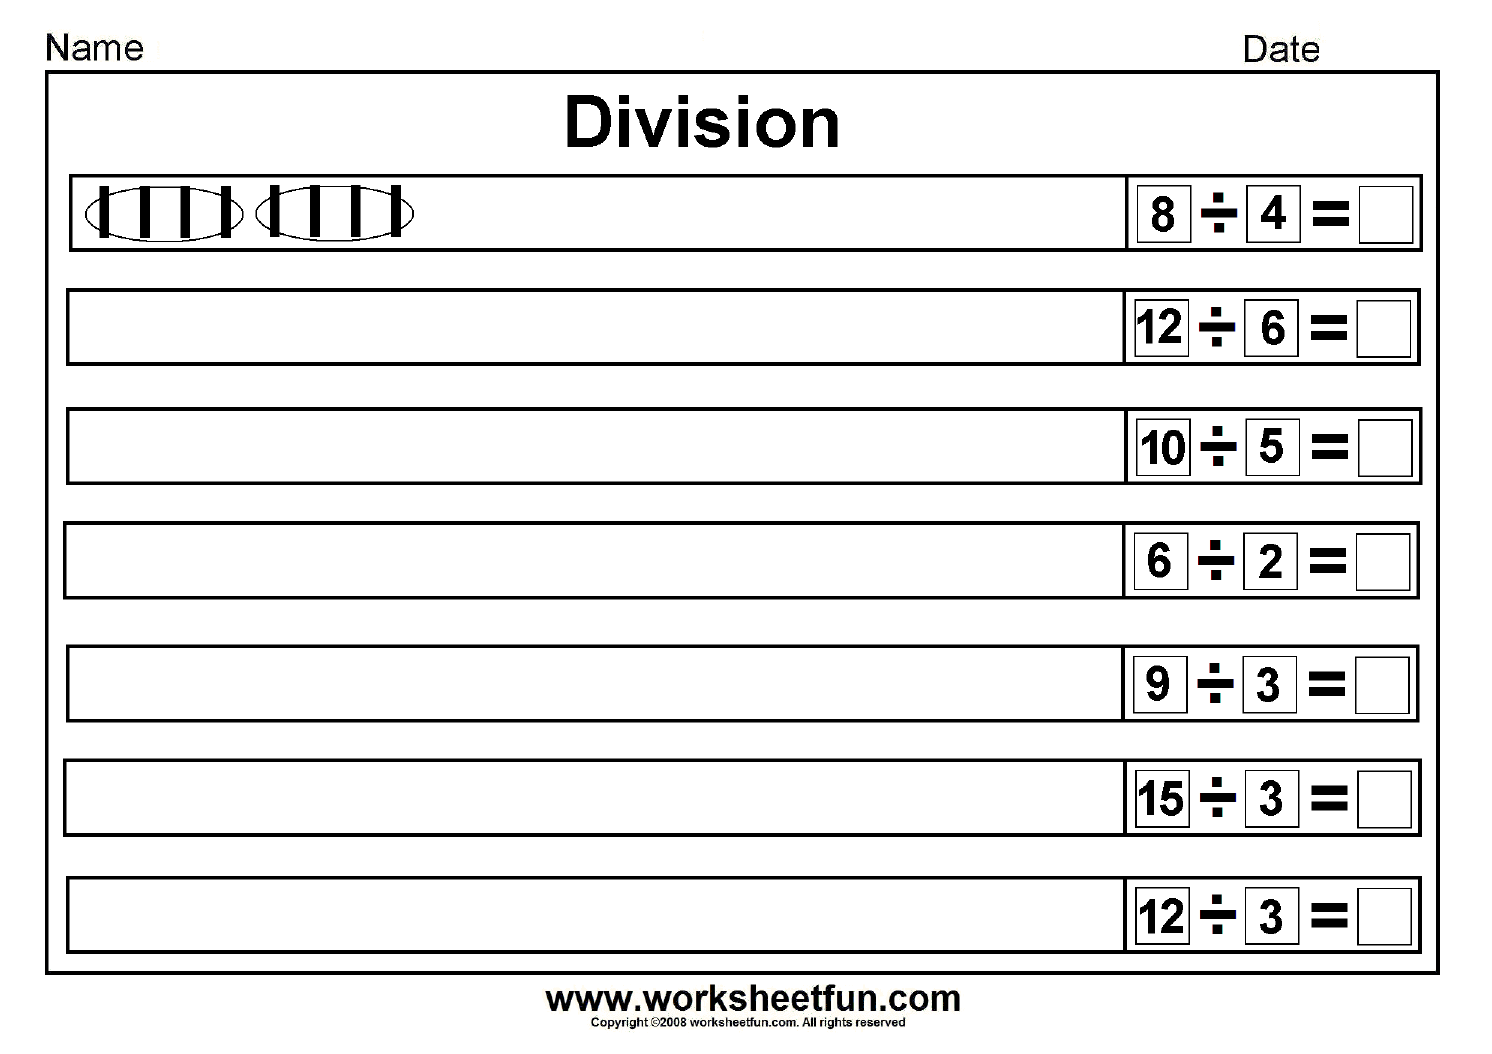 Division Draw Lines Worksheet 1 1 492 1 054 Pixels